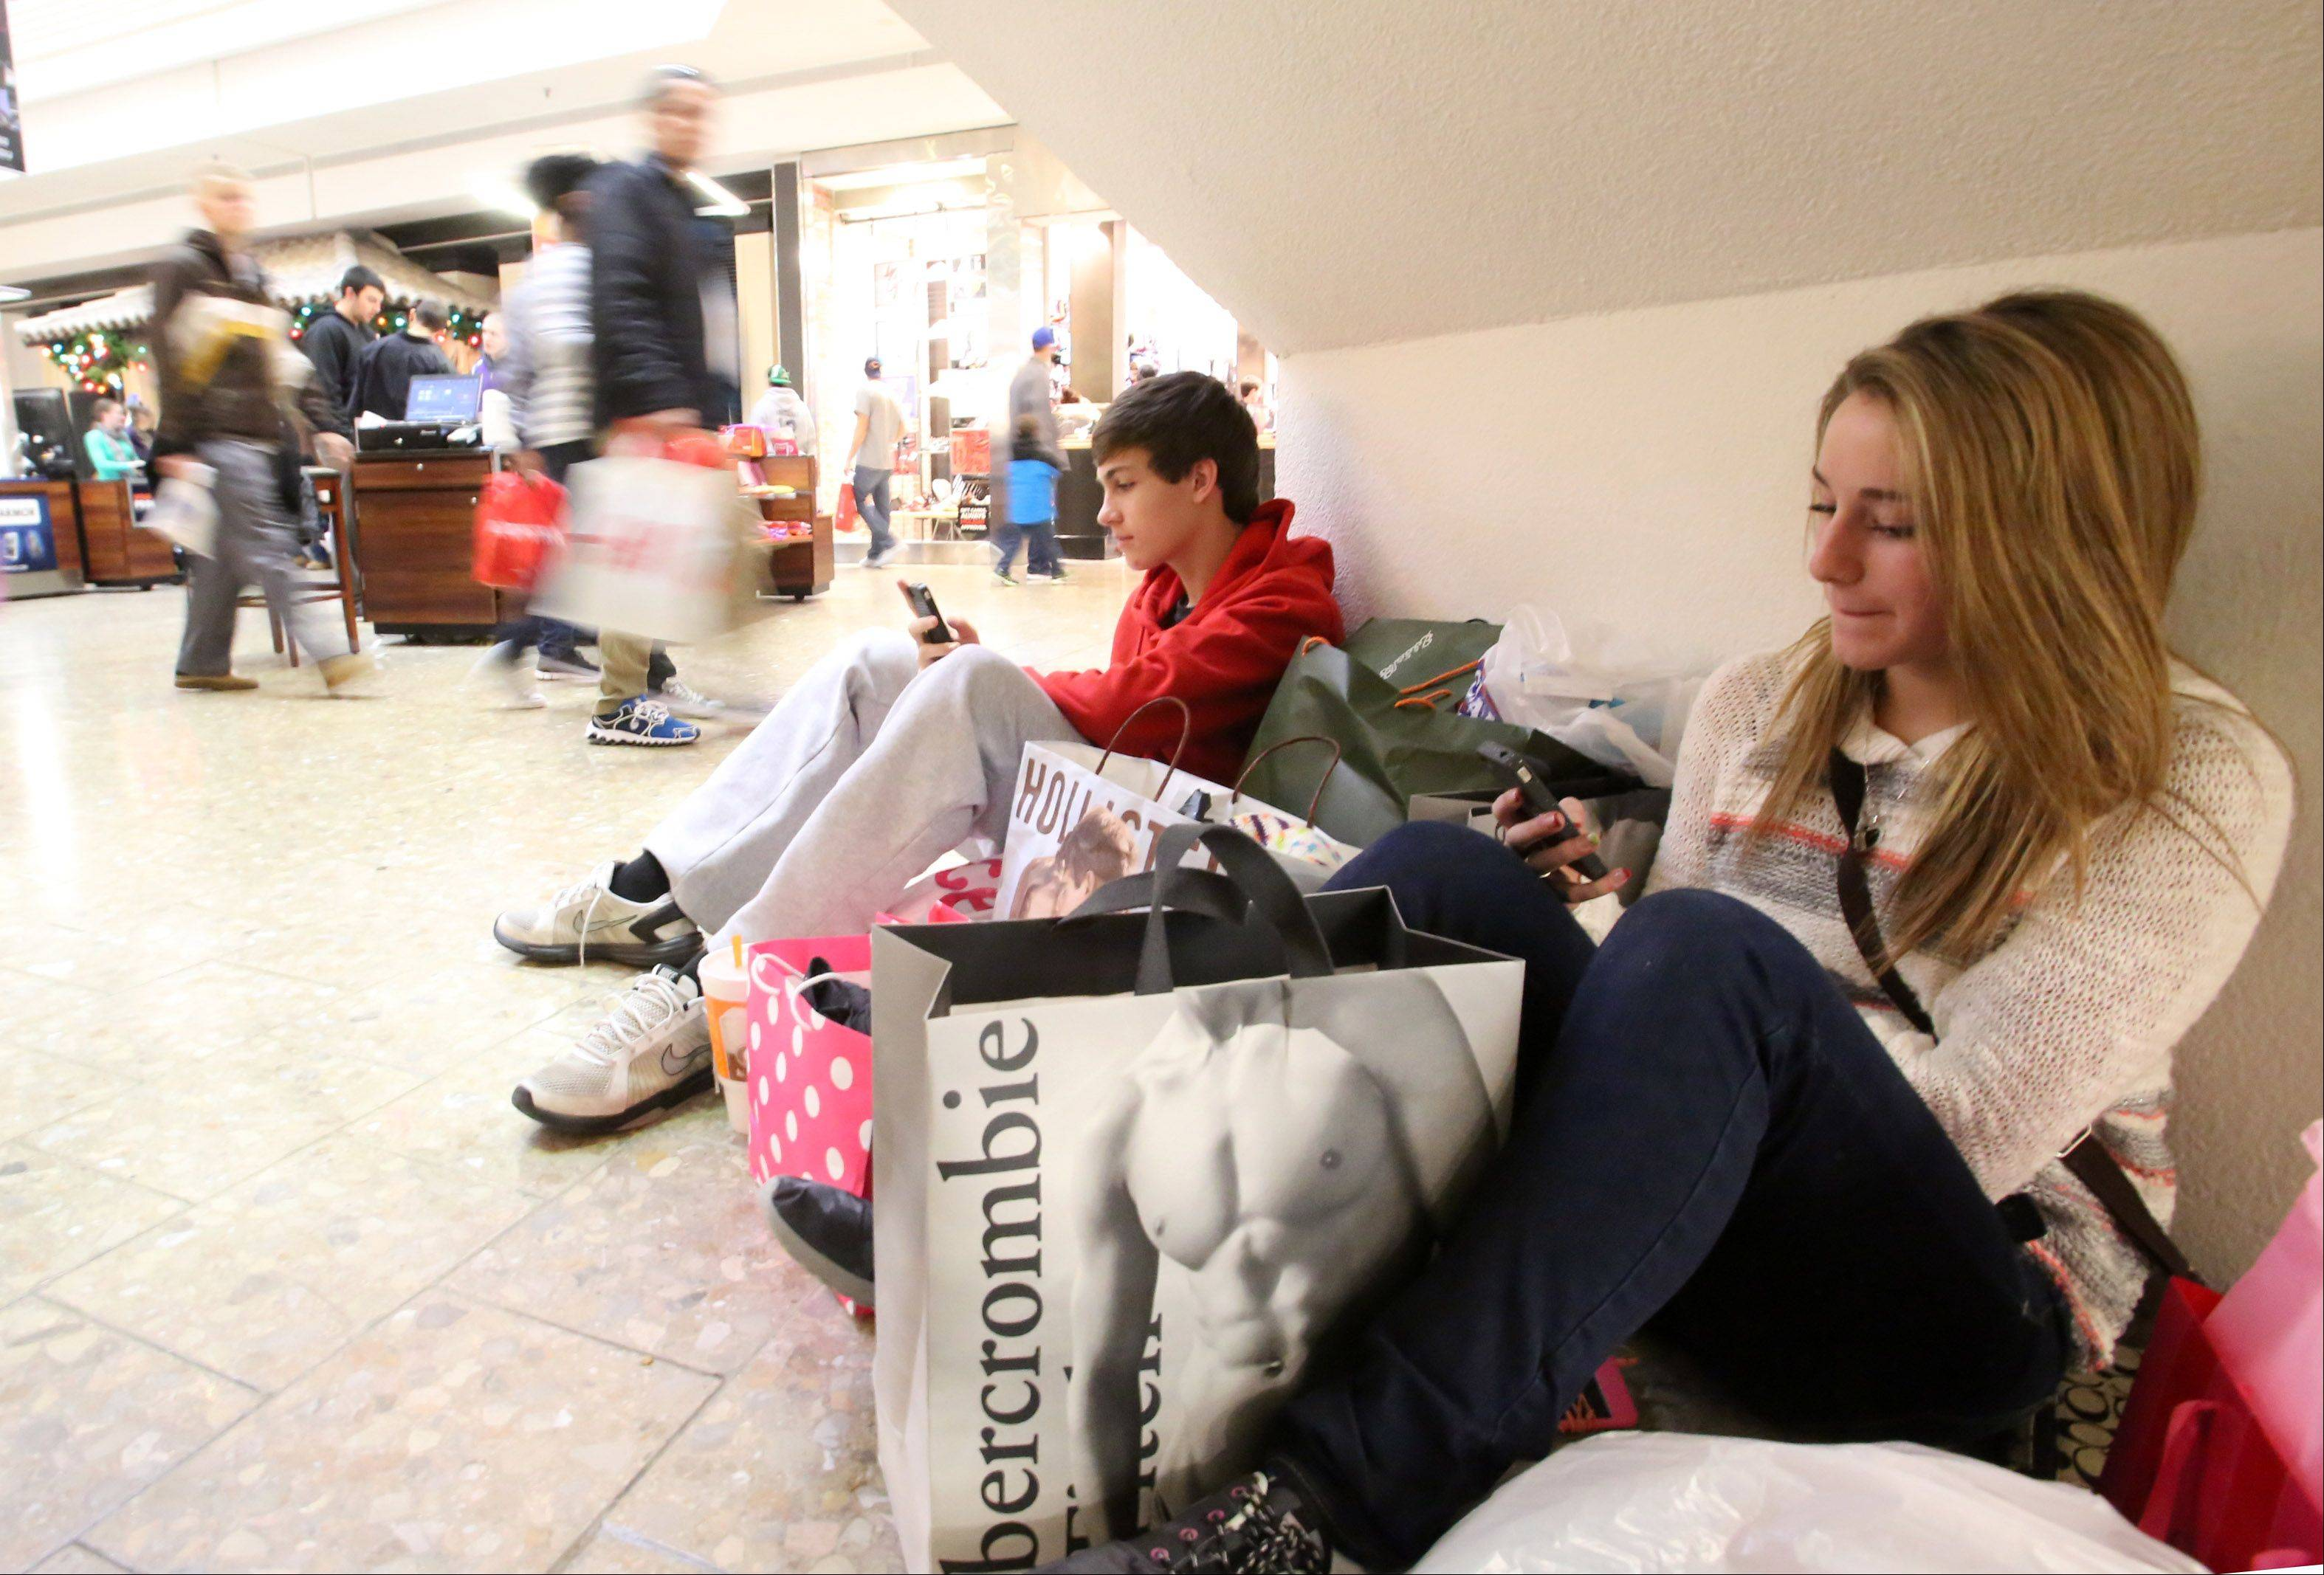 Sydney Keckeisen and her cousin Riley Keckeisen, both 14 of Kenosha, Wis., take a break from shopping under a staircase at Woodfield Mall in Schaumburg Friday.